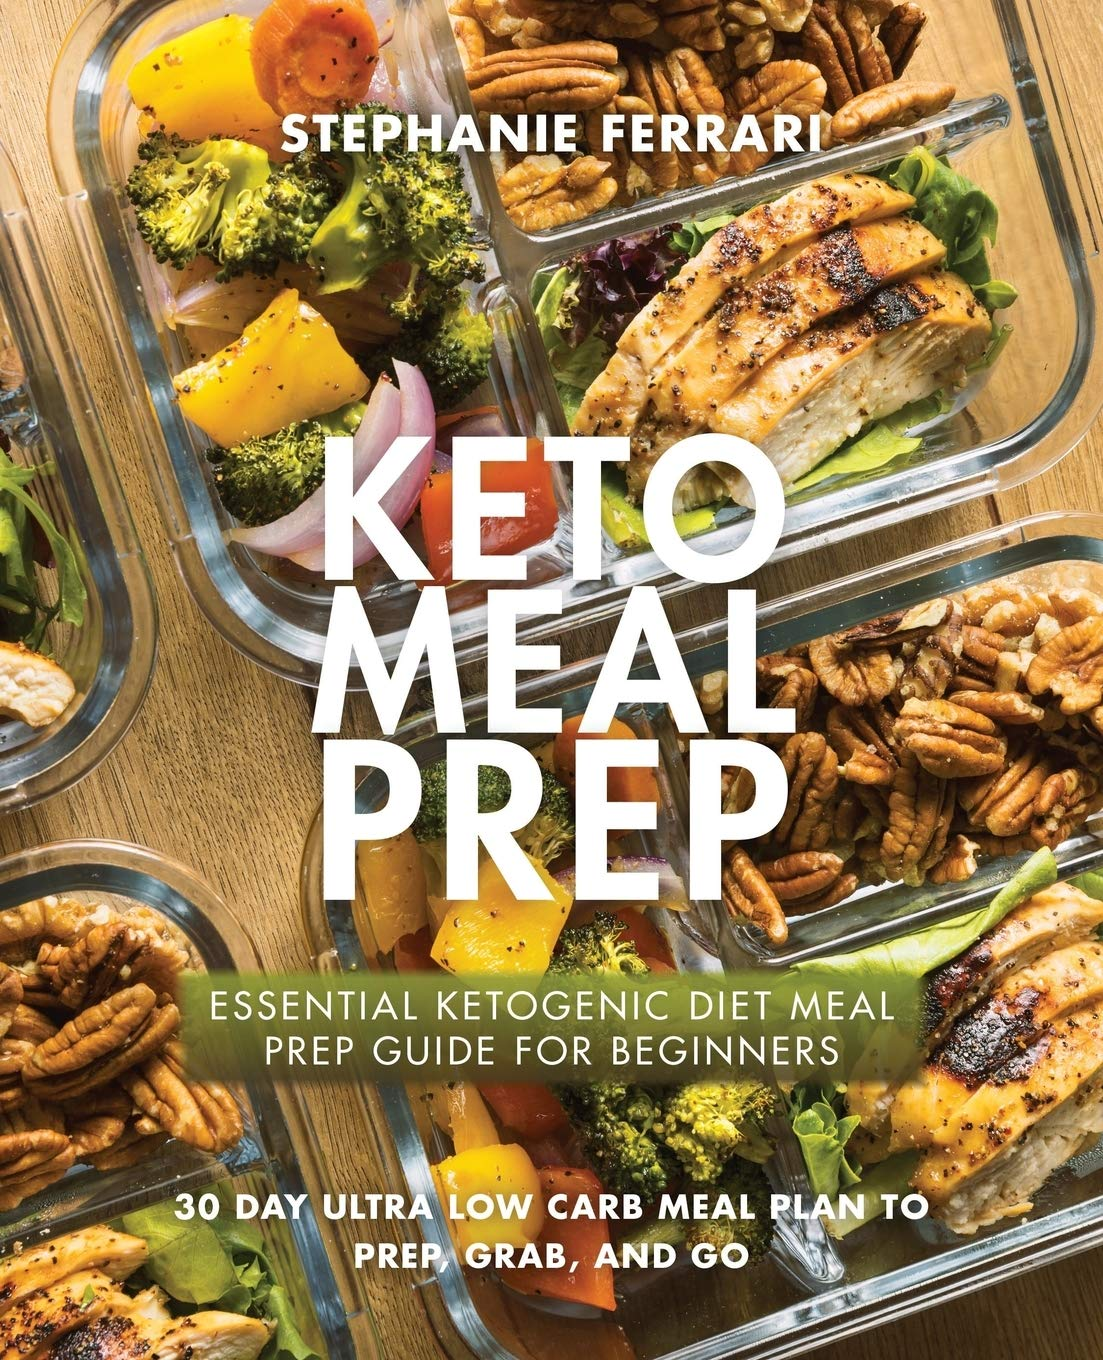 Amazon Com Keto Meal Prep Essential Ketogenic Diet Meal Prep Guide For Beginners 30 Day Ultra Low Carb Meal Plan To Prep Grab And Go 9781775274247 Ferrari Stephanie Books